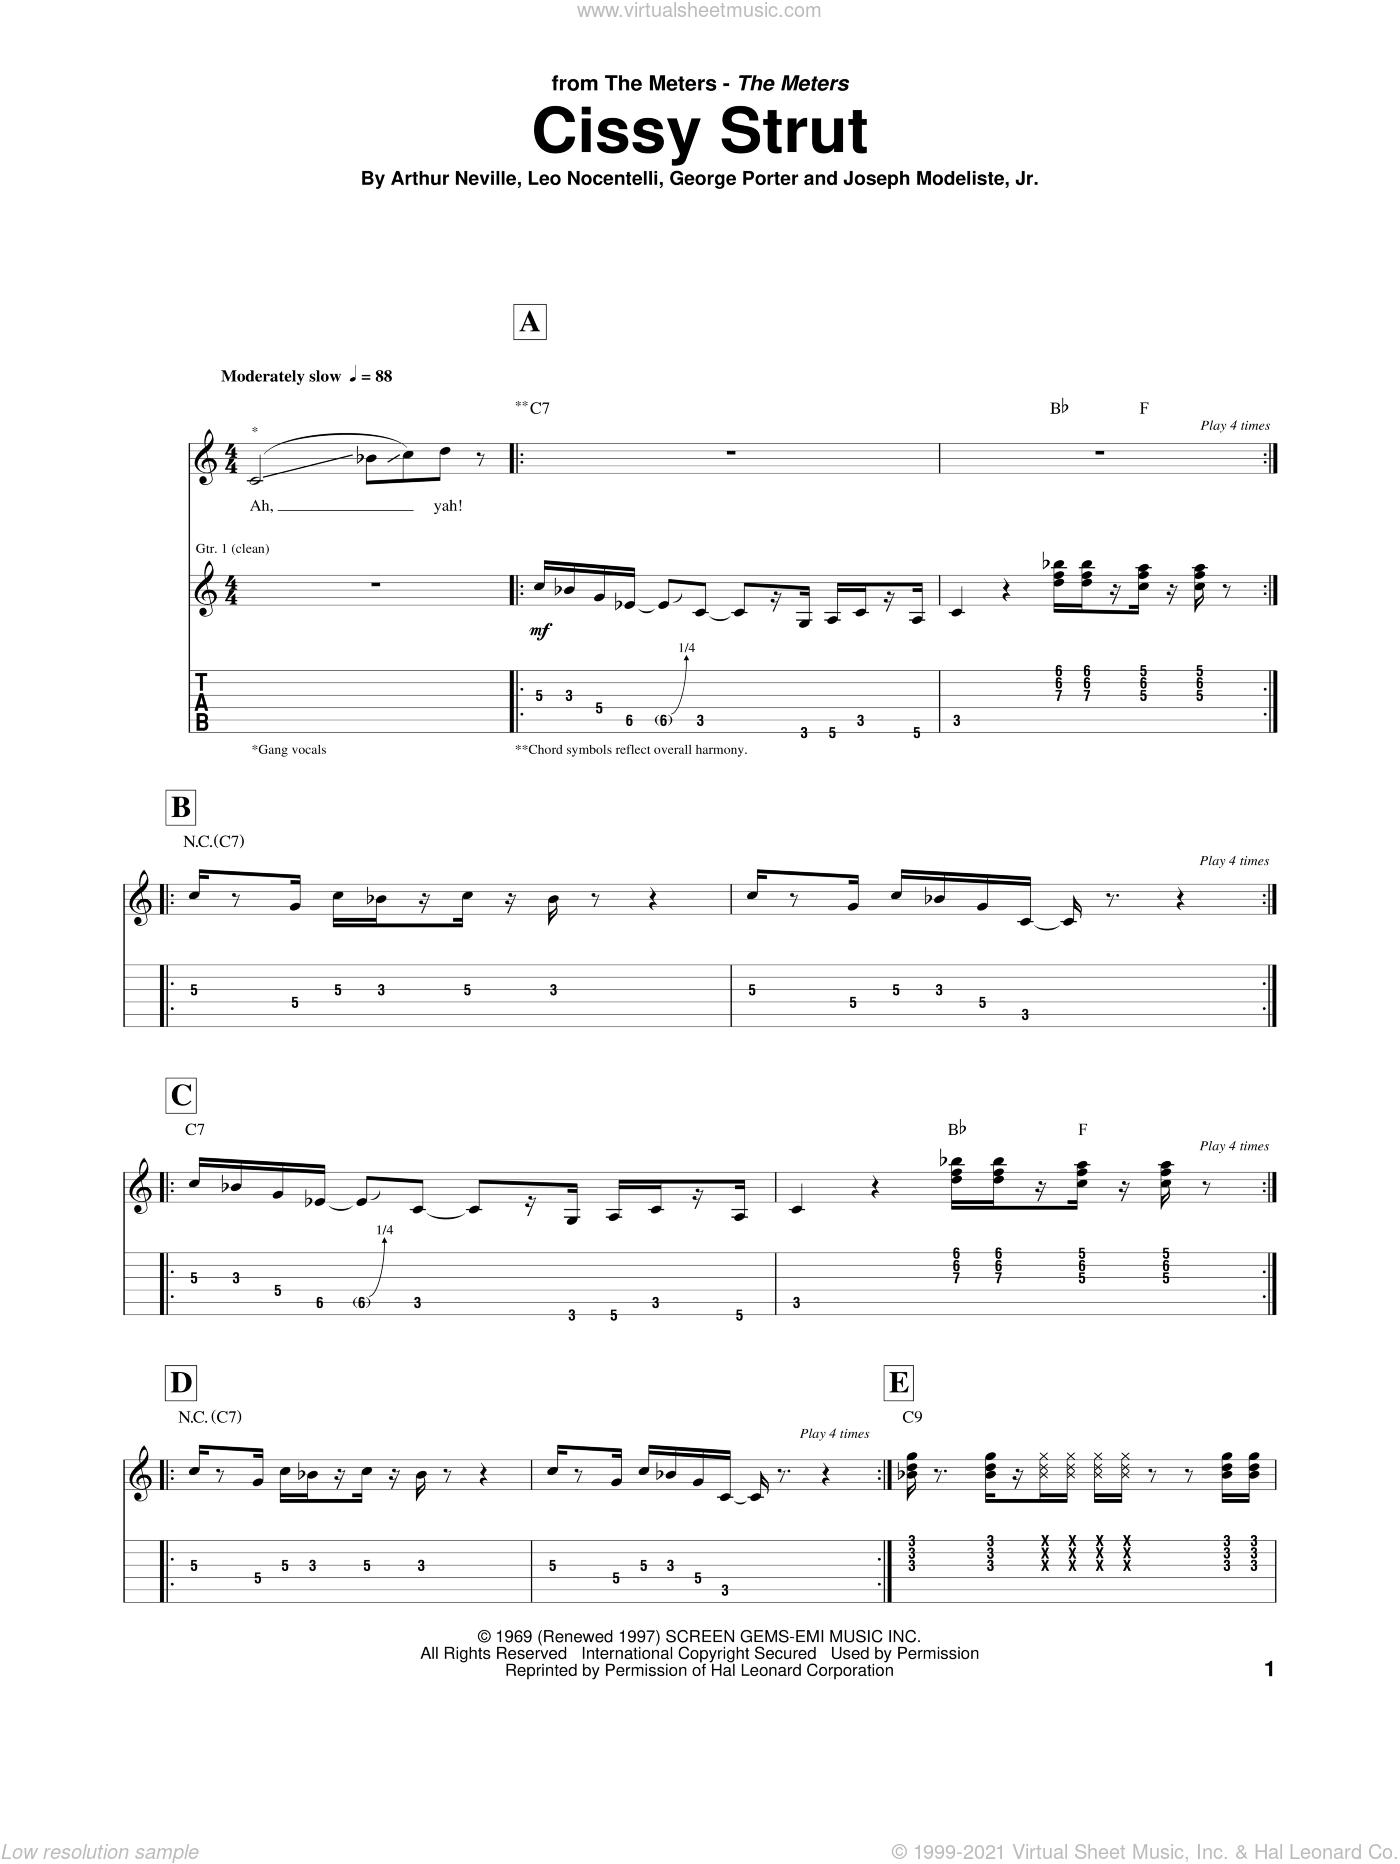 Cissy Strut sheet music for guitar (tablature) by The Meters, Arthur Neville and Leo Nocentelli. Score Image Preview.